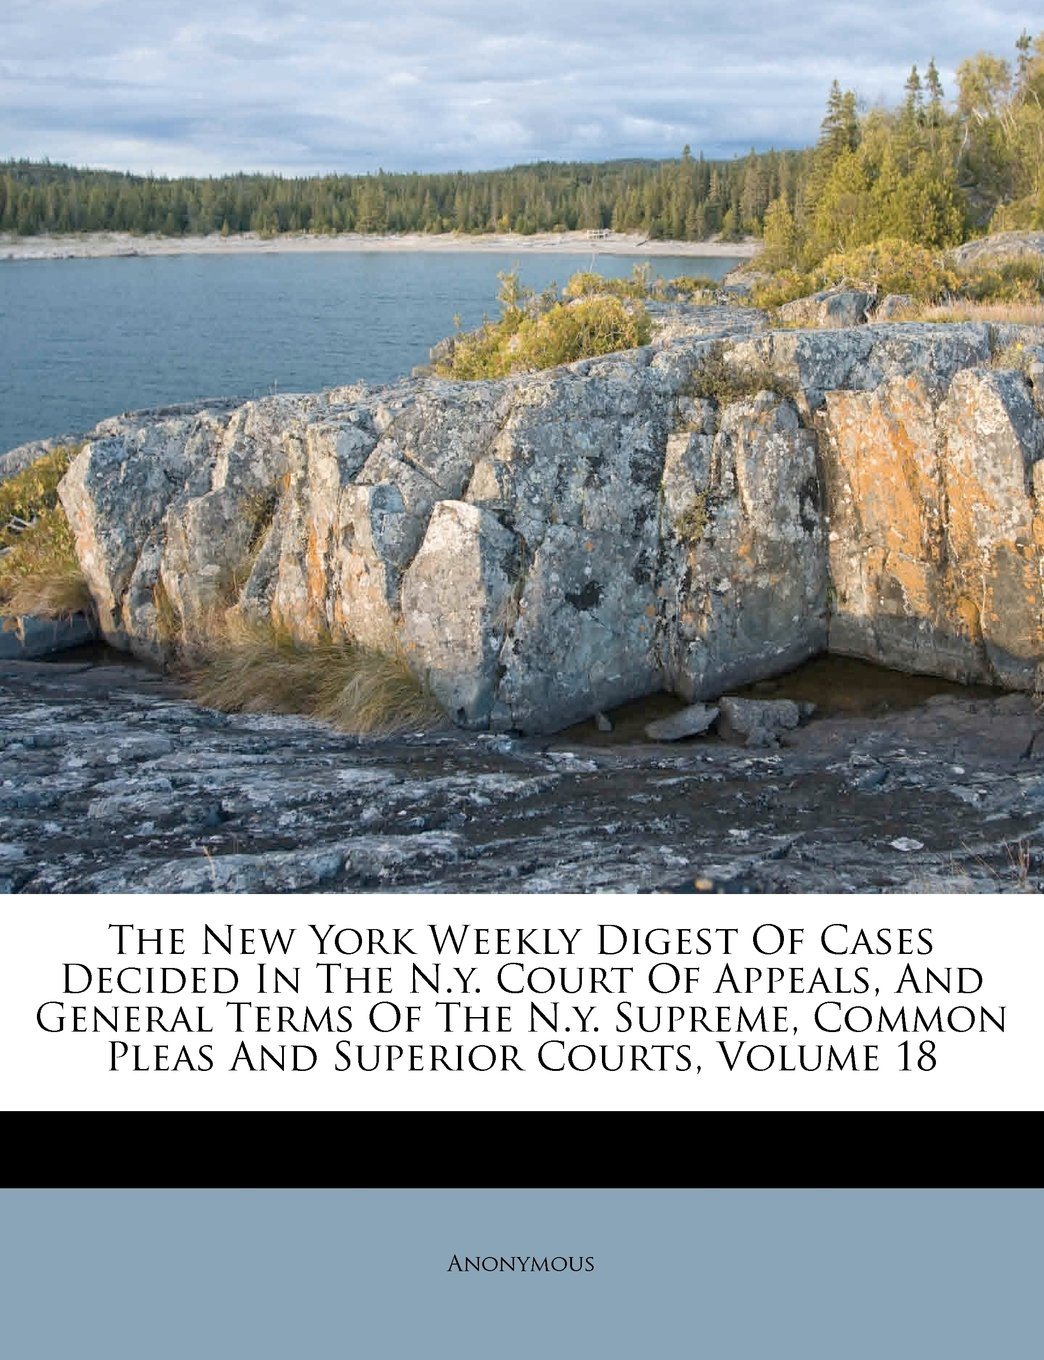 The New York Weekly Digest Of Cases Decided In The N.y. Court Of Appeals, And General Terms Of The N.y. Supreme, Common Pleas And Superior Courts, Volume 18 ebook